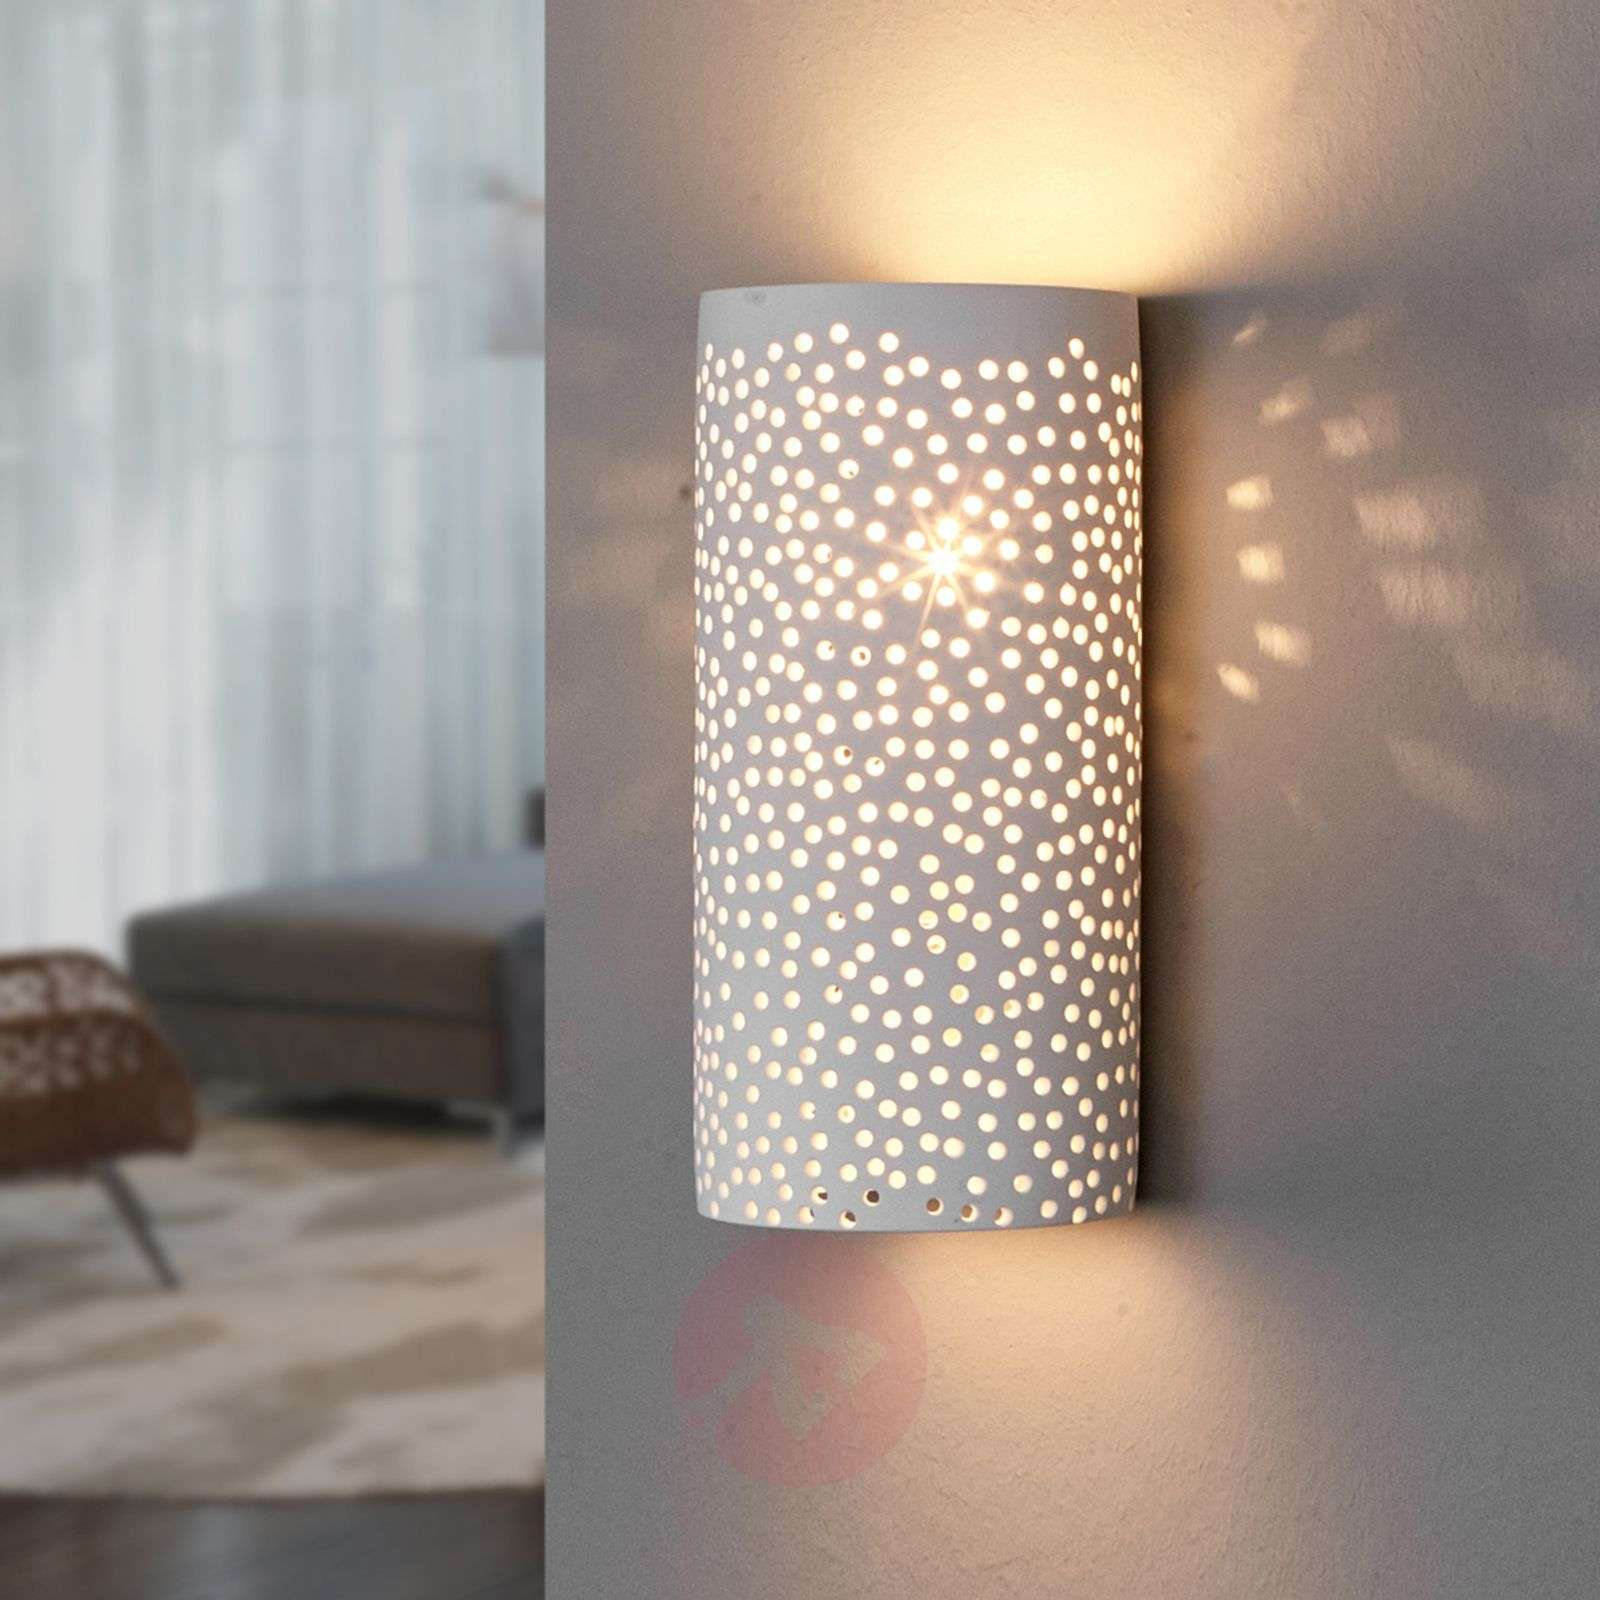 Perforated wall light Jiru made of white plaster-9613051-02